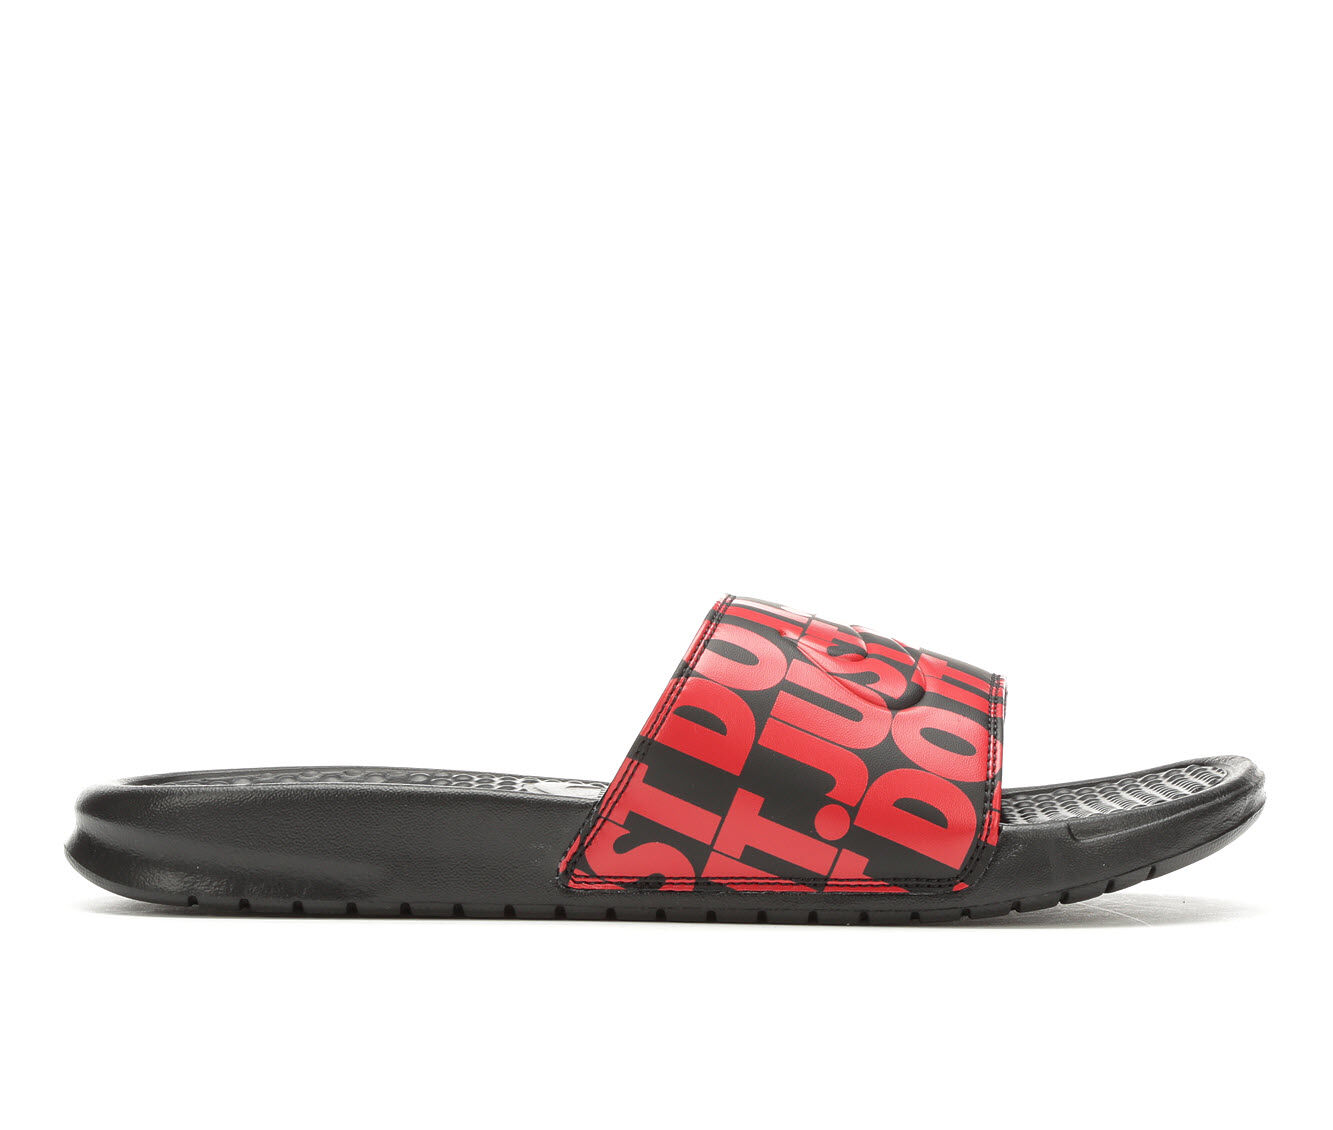 Men's Nike Benassi JDI Print Sport Slides Black/Uni Red